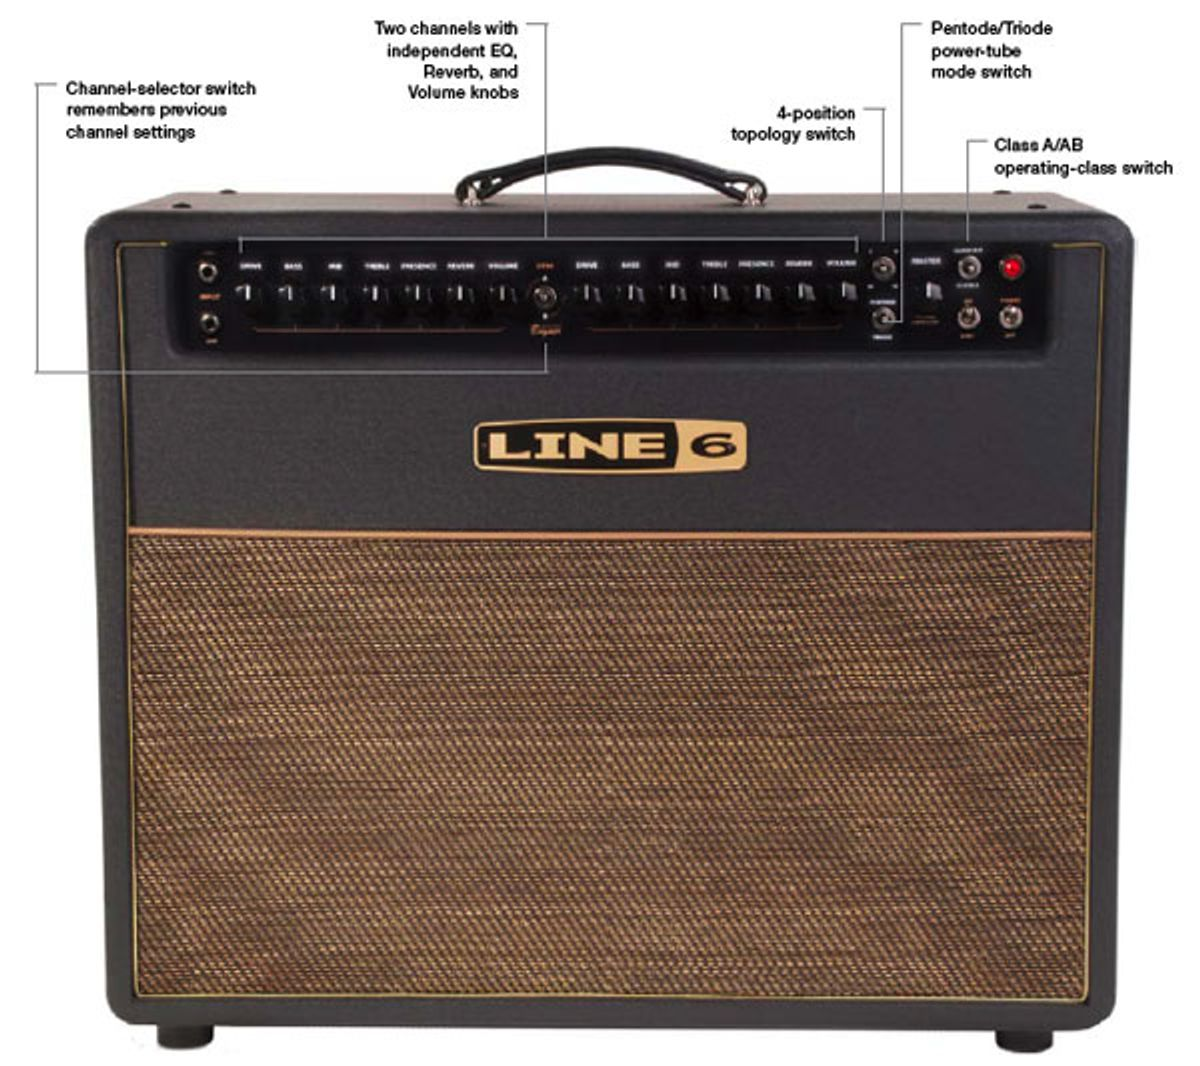 Line 6 DT50 112 Combo Amp Review